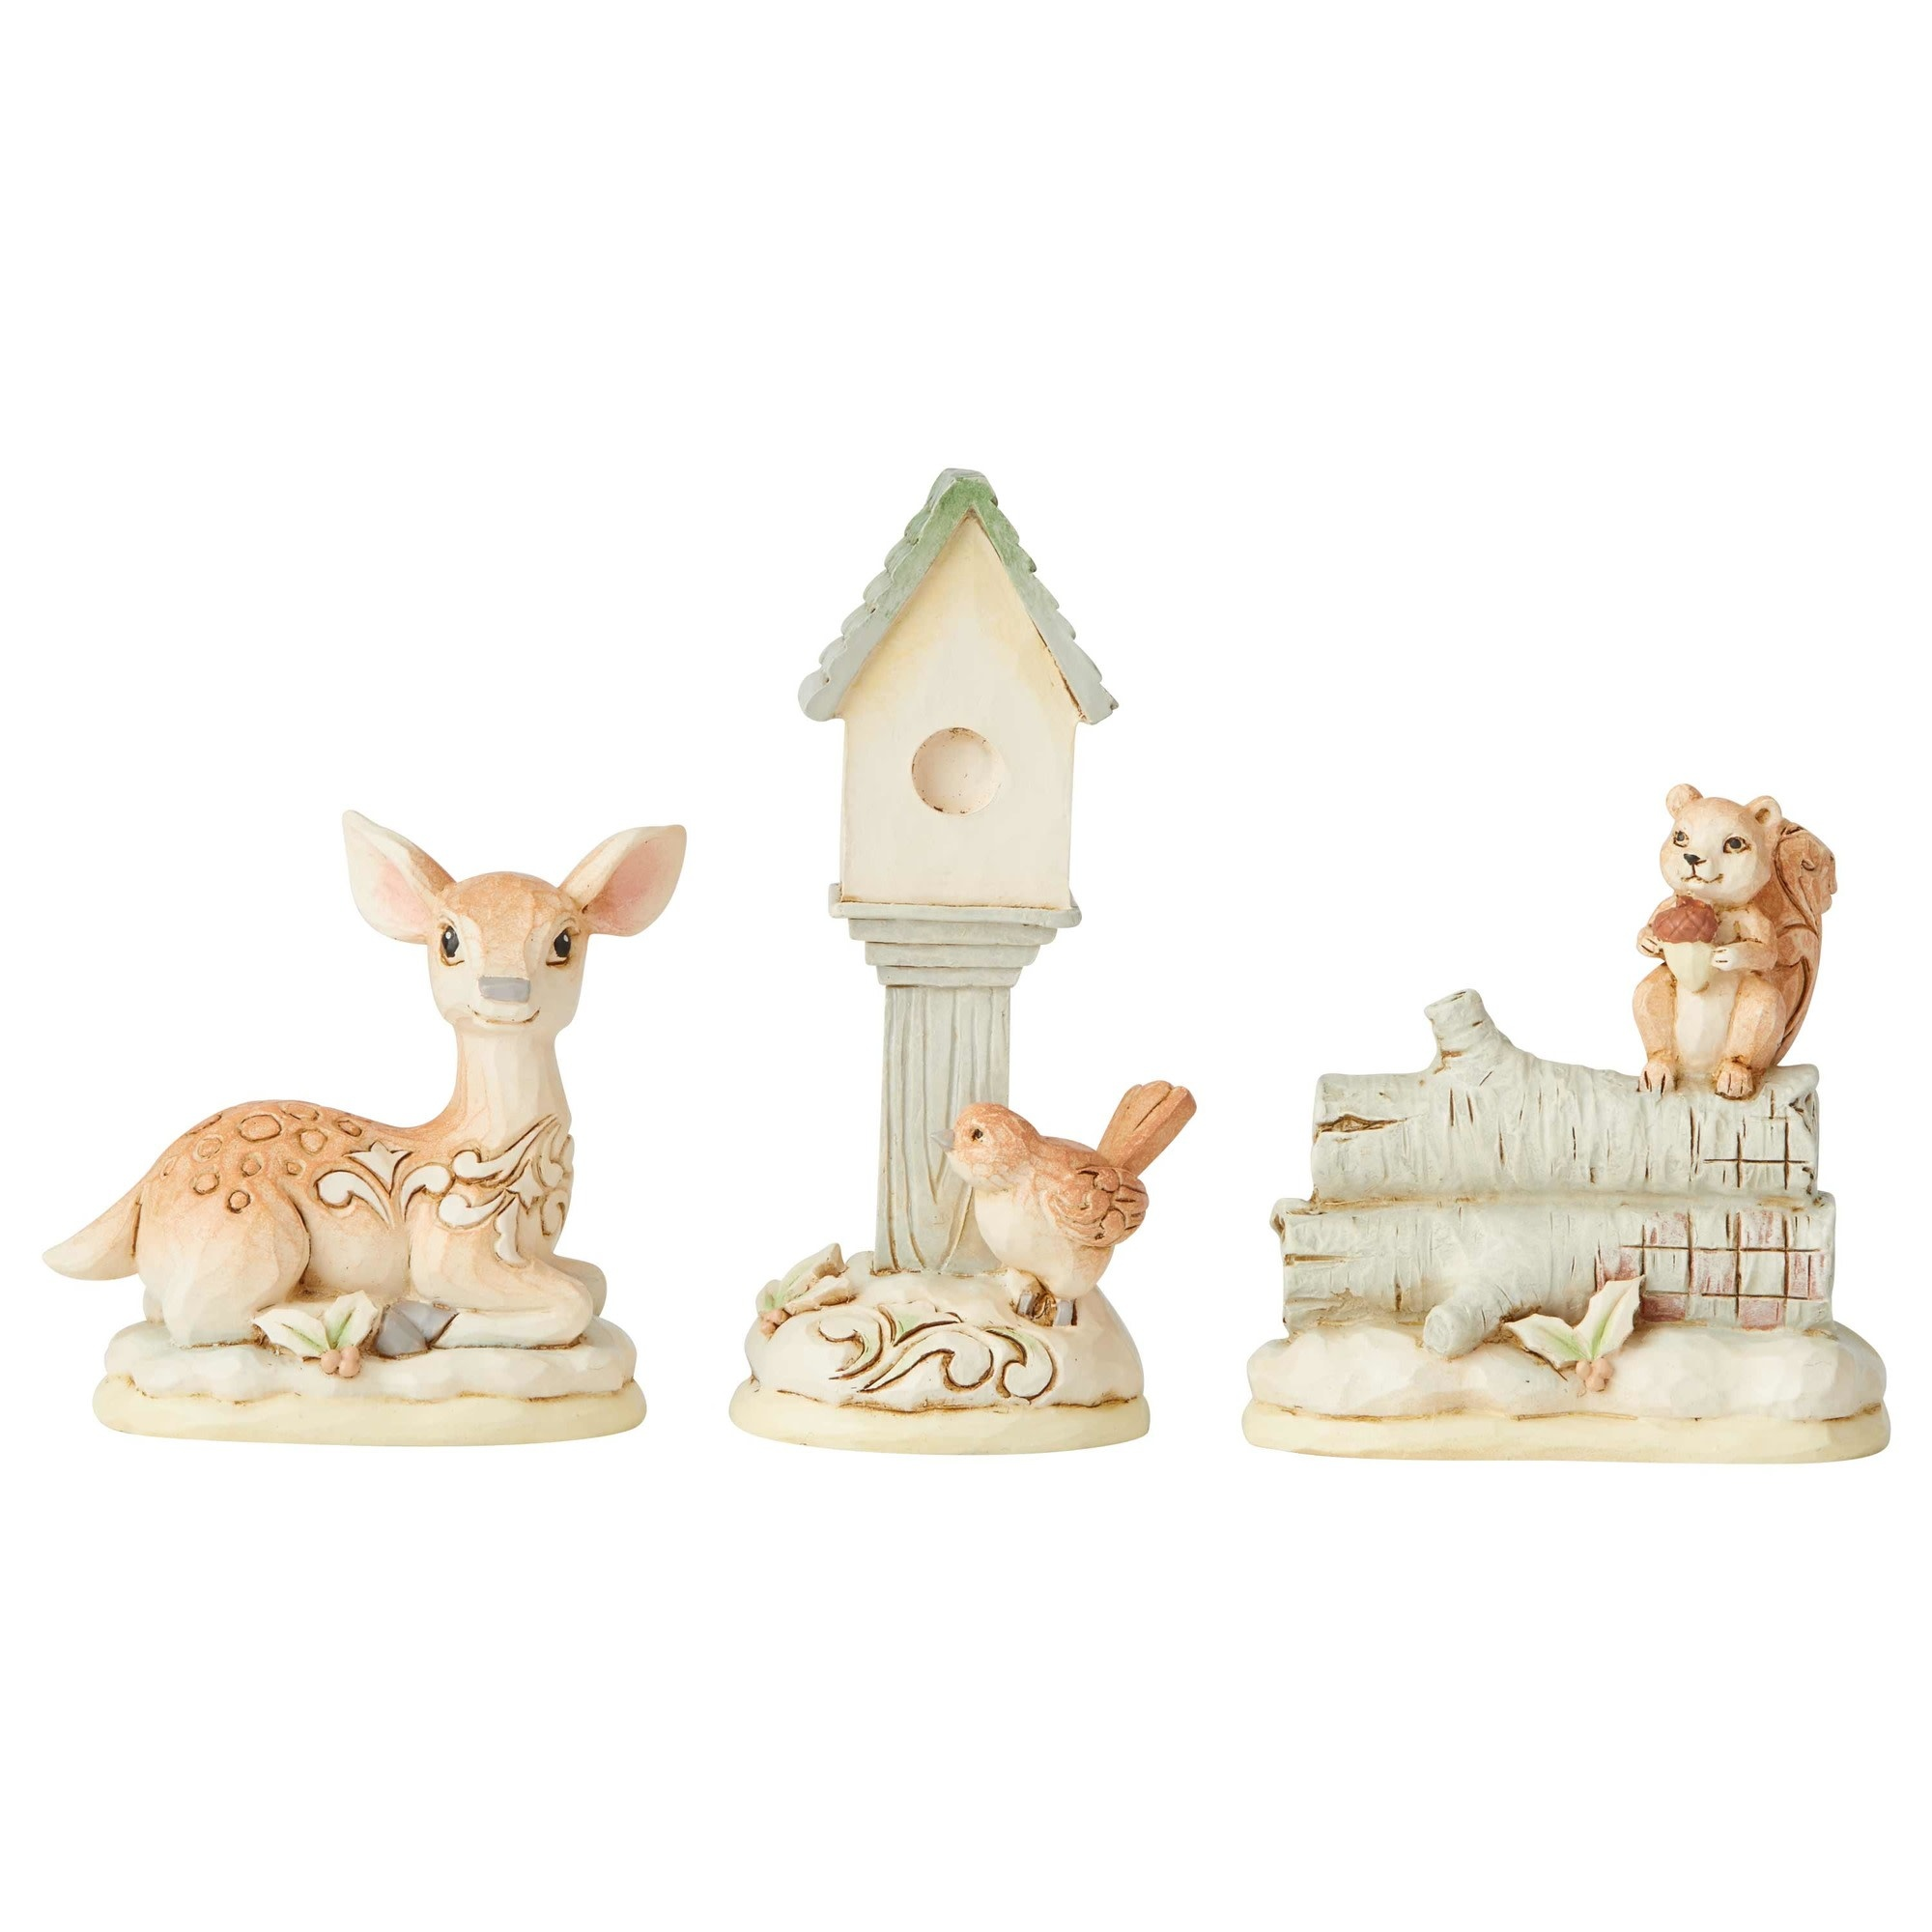 Jim Shore Woodland Mini Animal Set of 3